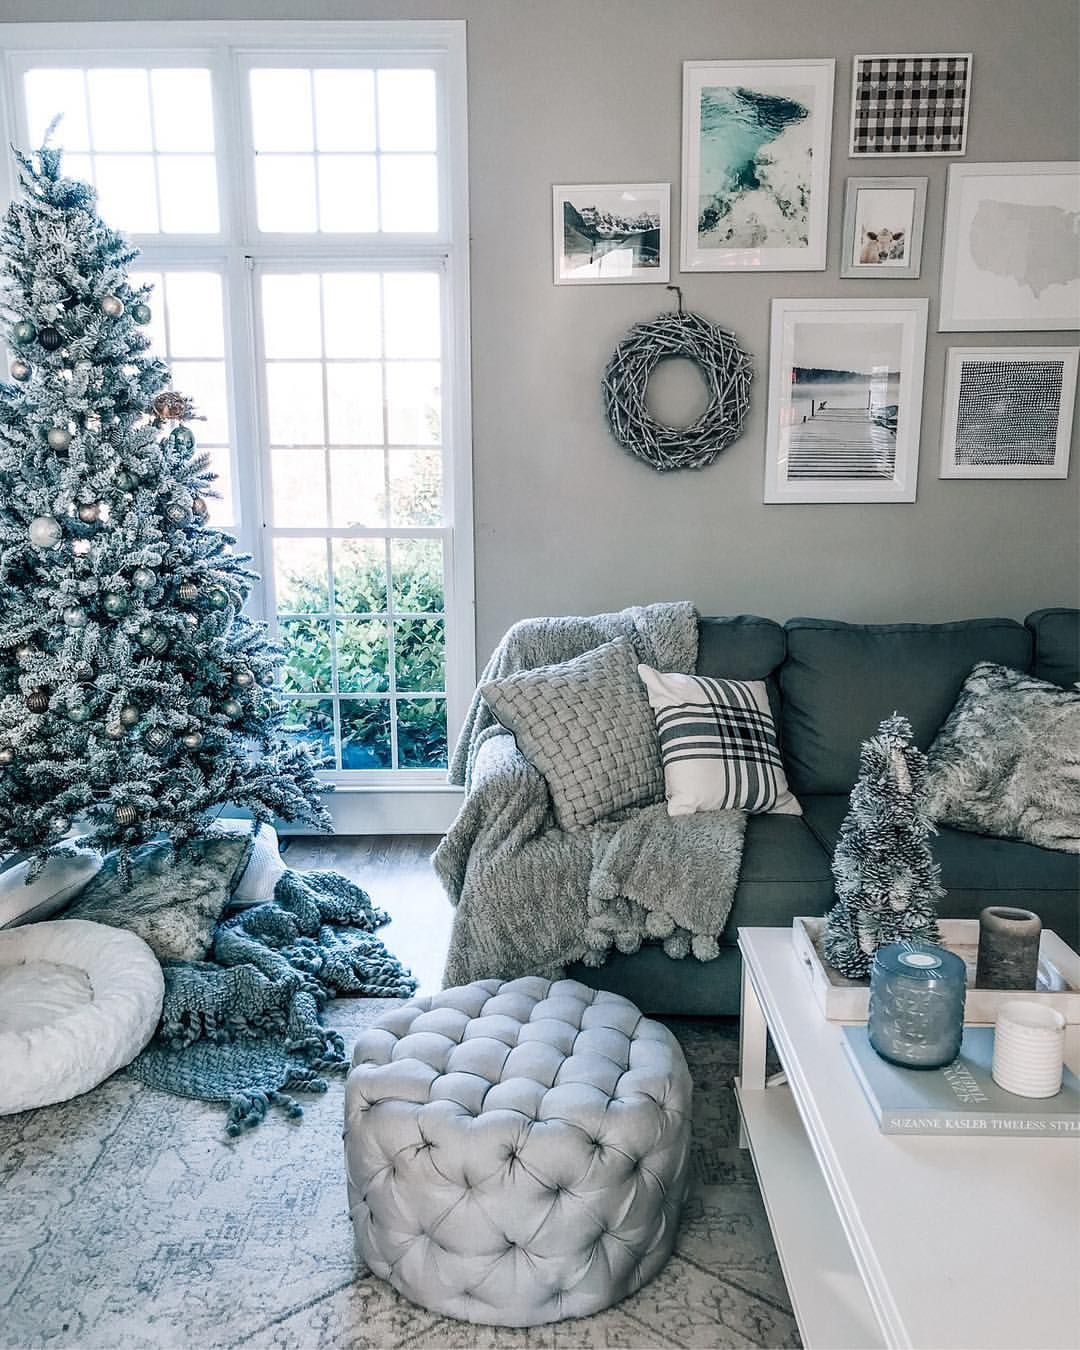 Repose Gray In Living Room, Holiday Decor, Repose Grey By